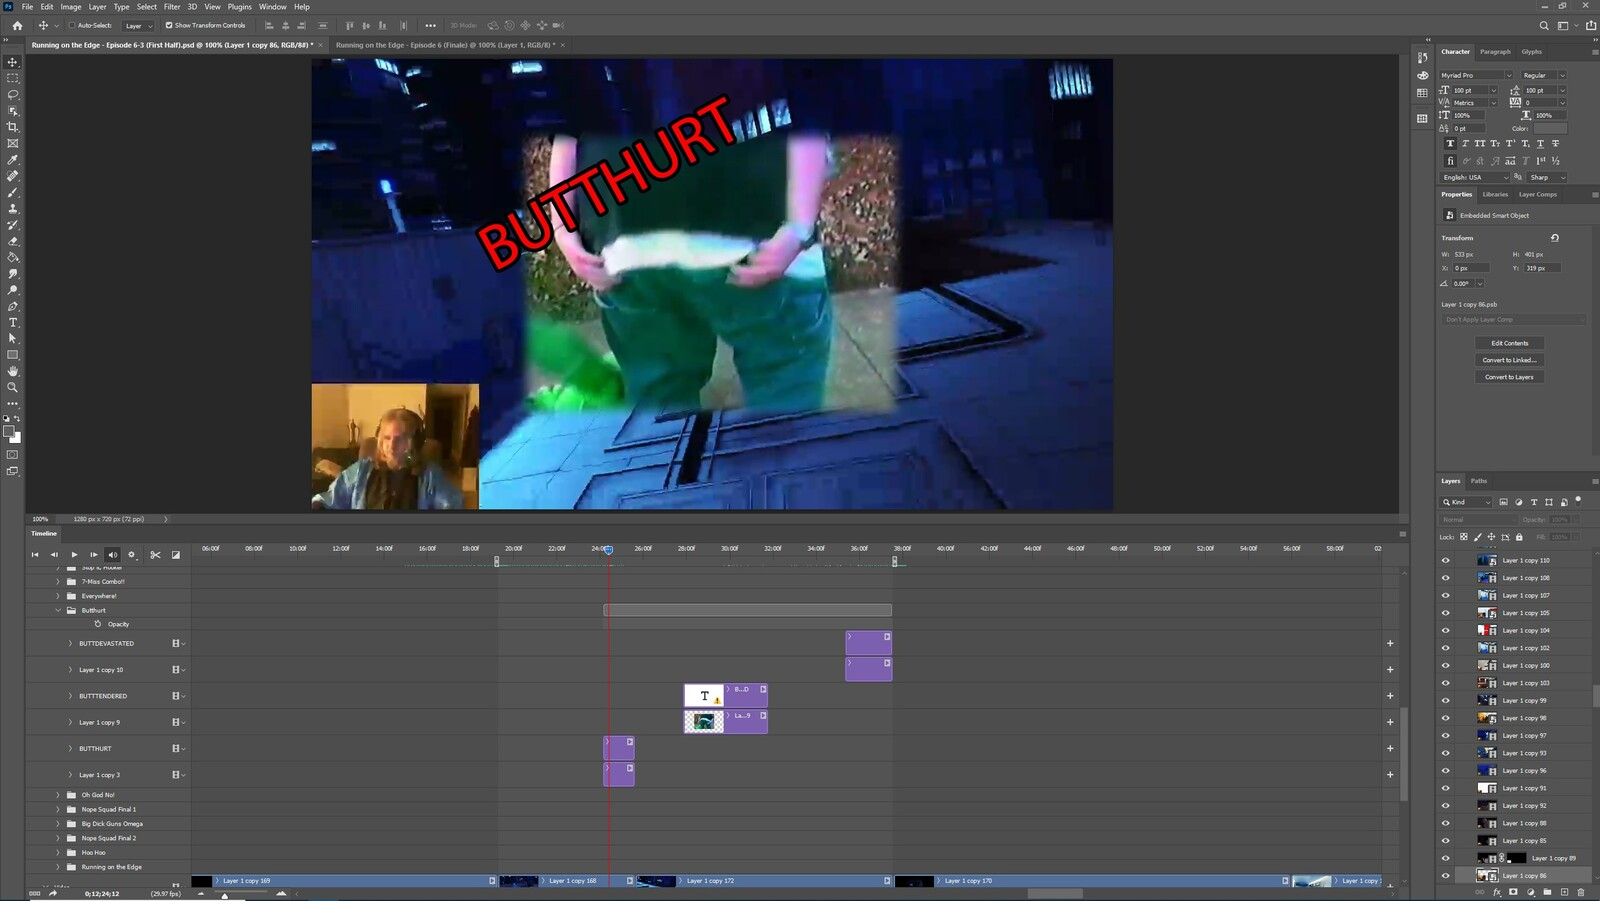 """The """"Butt Devastated"""" visual effect within Photoshop video editor"""